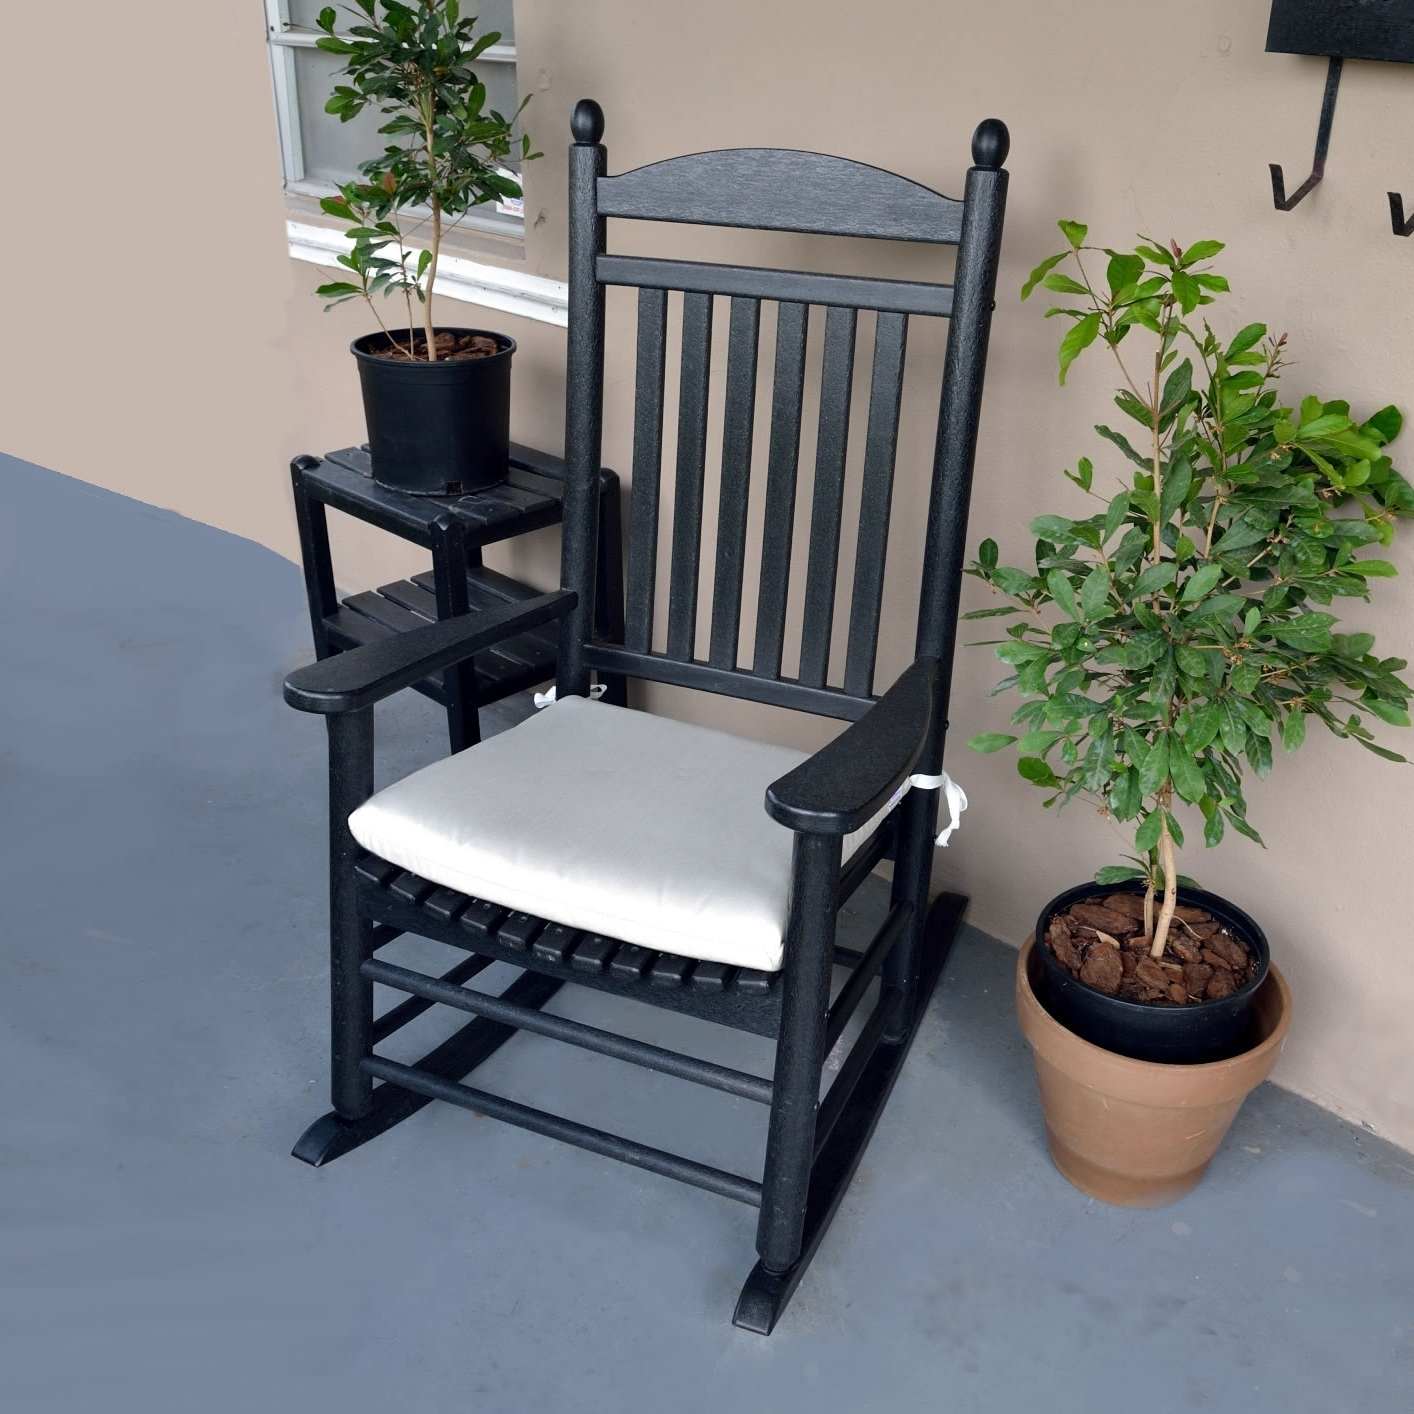 Patio Rocking Chairs With Cushions Regarding Recent Polywood Rocking Chair Seat Cushions – Outdoor Cushions – Accessories (View 10 of 20)